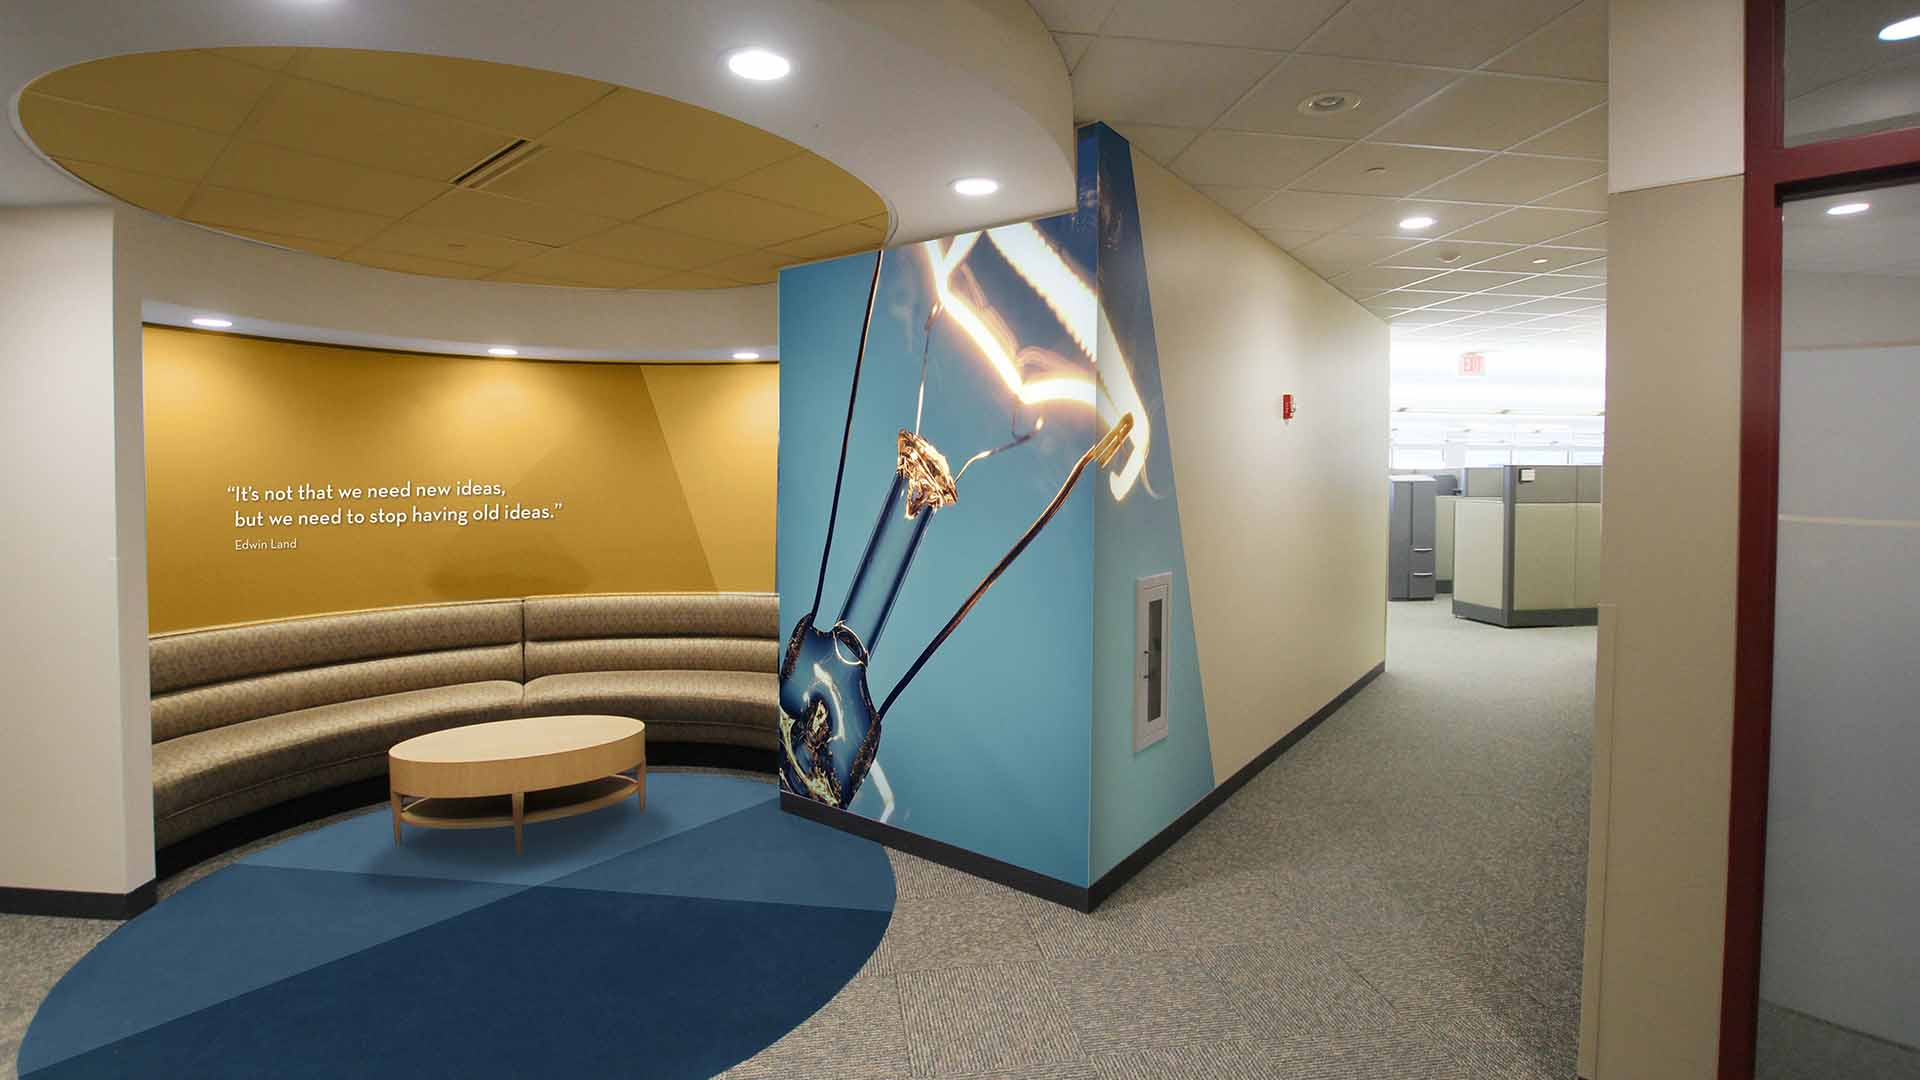 Area with seating has custom wall graphics and custom finishes relating to logo